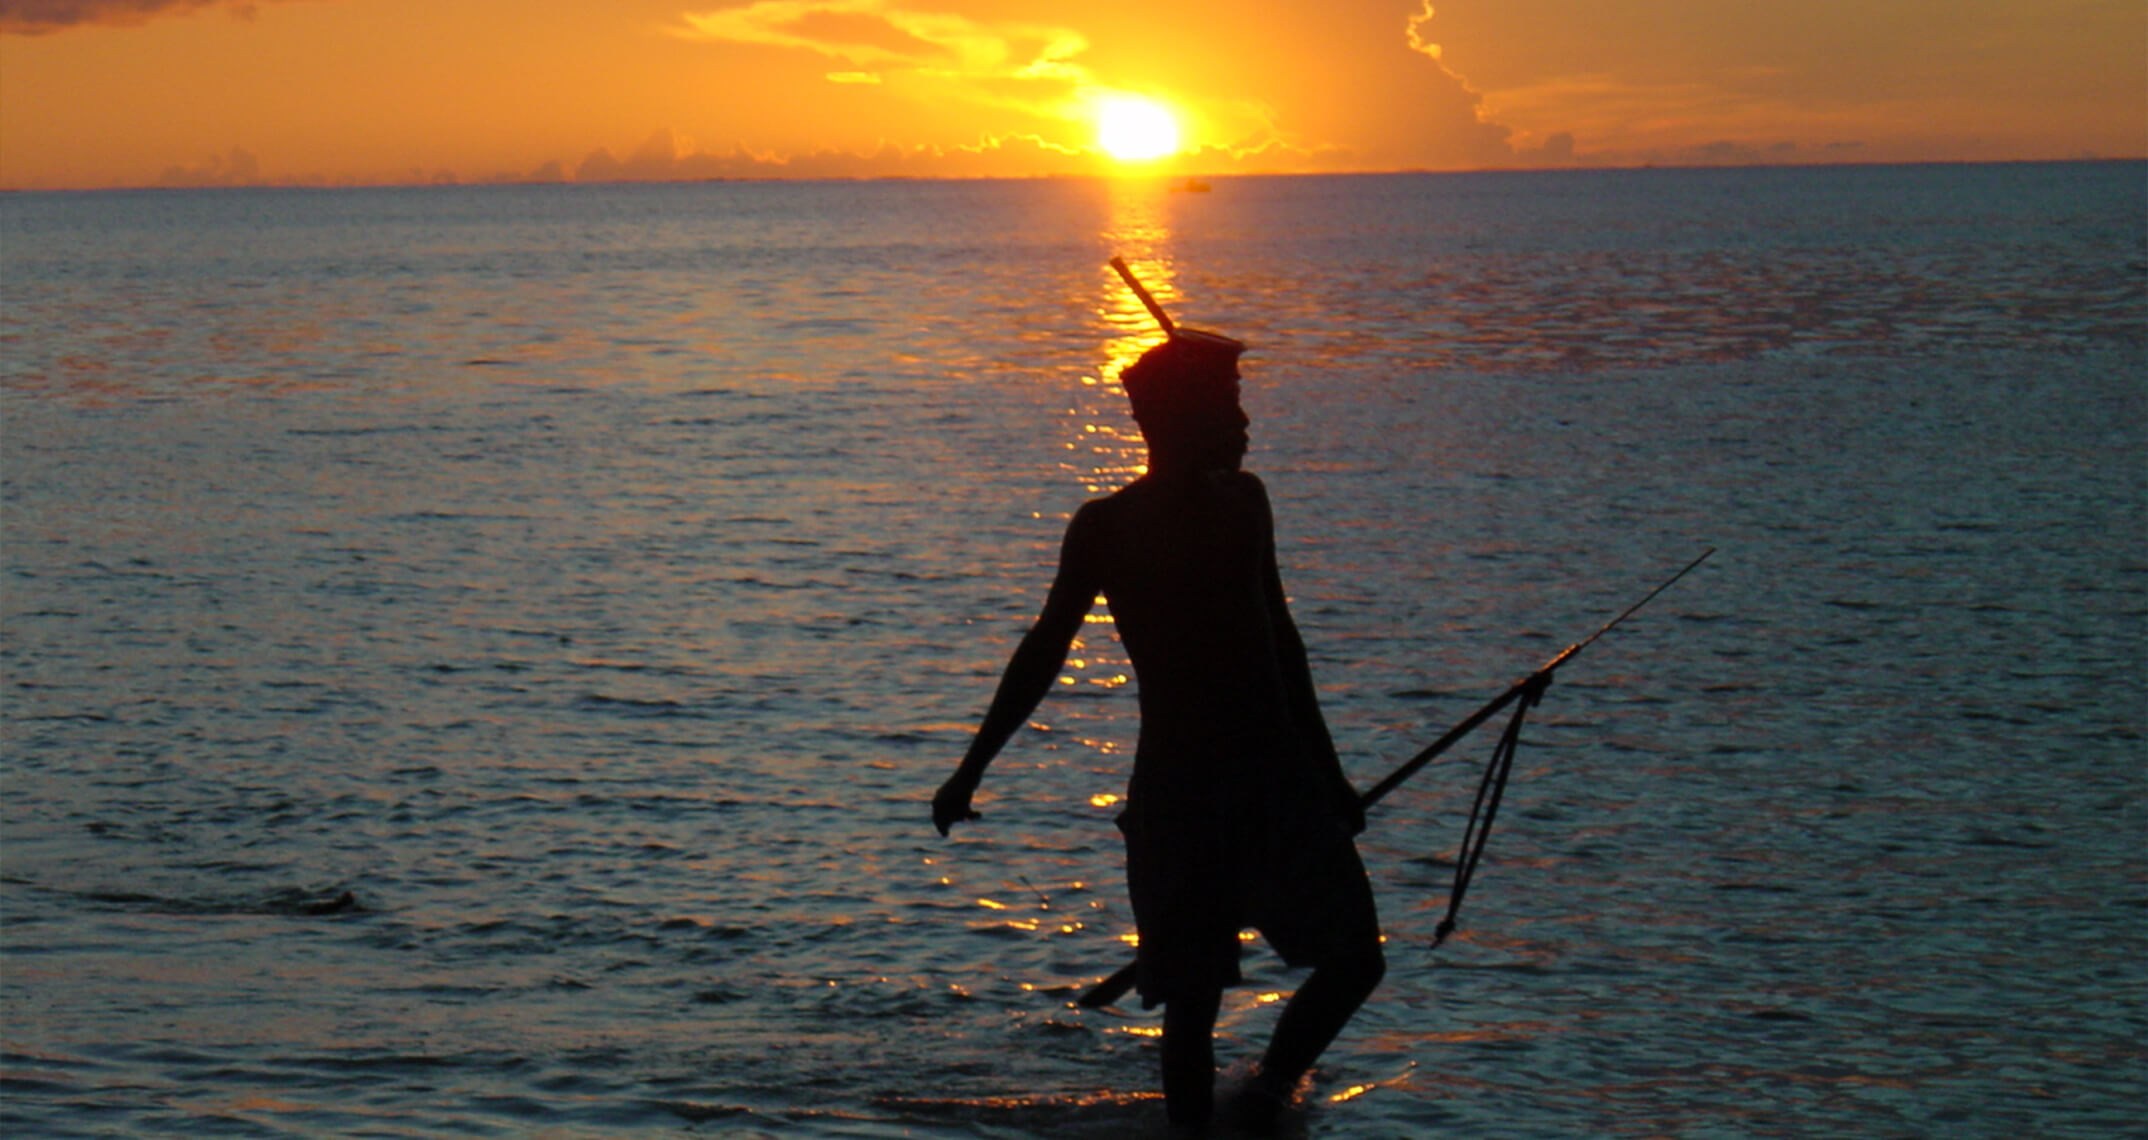 Man standing in the ocean at sunset.